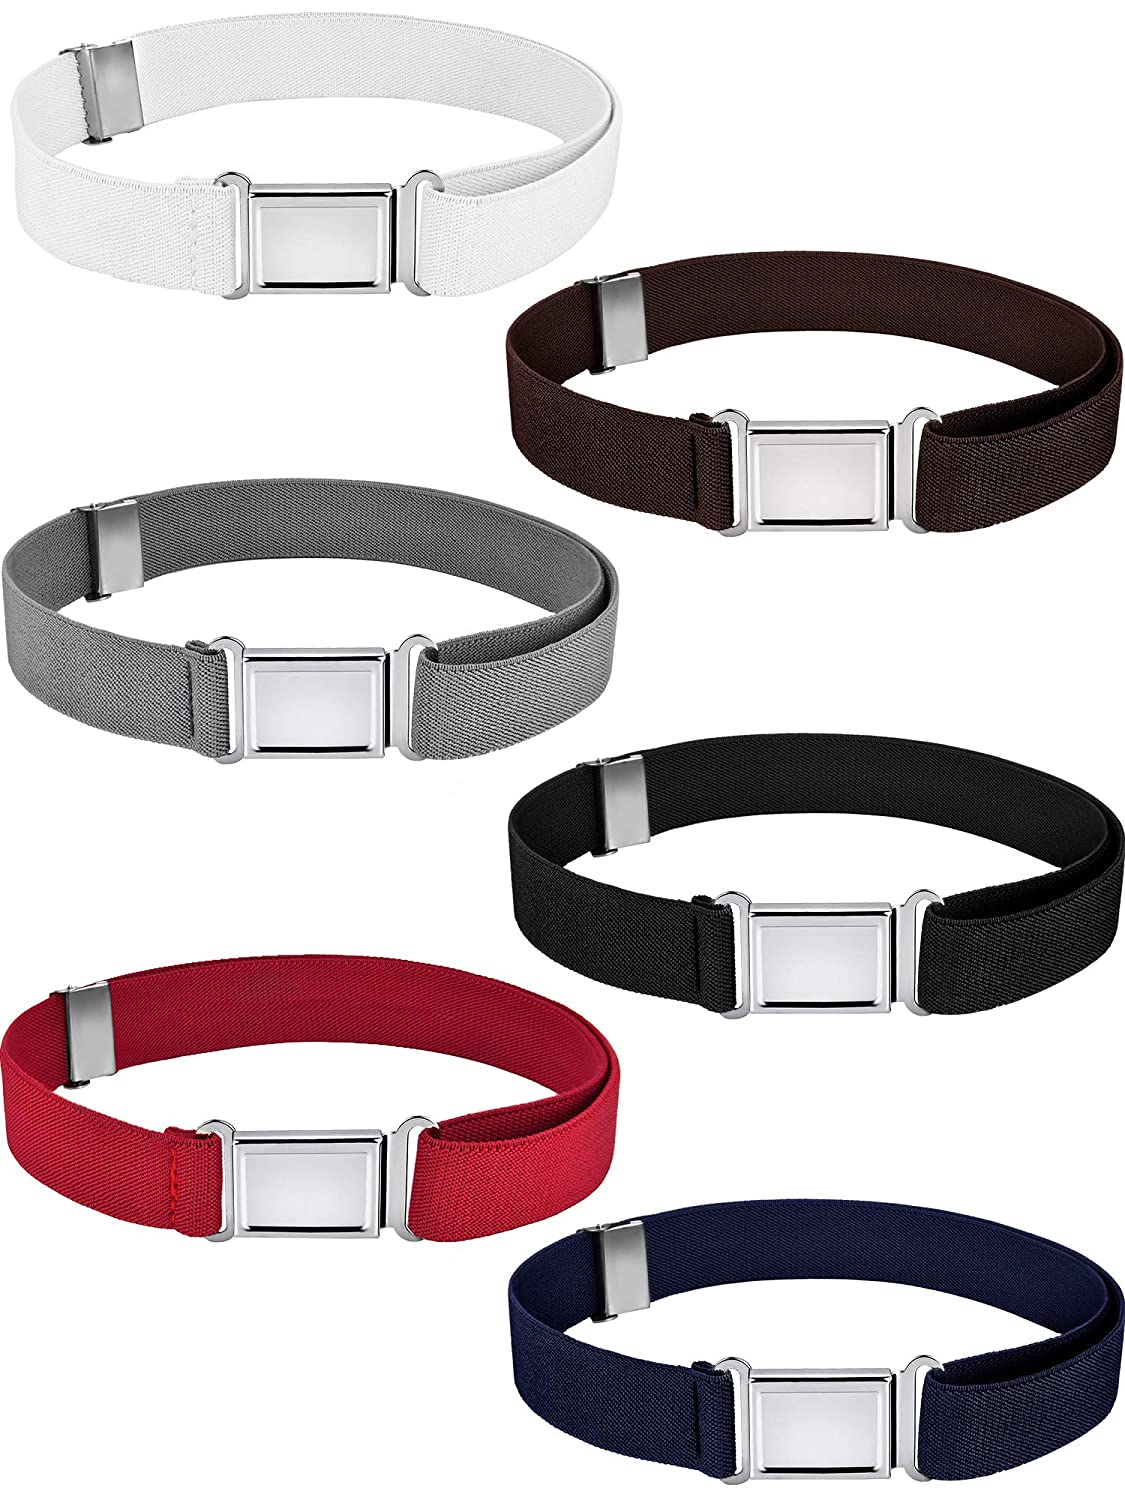 Gejoy 6 Pieces Kids Belt Adjustable Belt Stretchy Belt with Magnetic Buckle for Kids Supplies, Assorted Colors